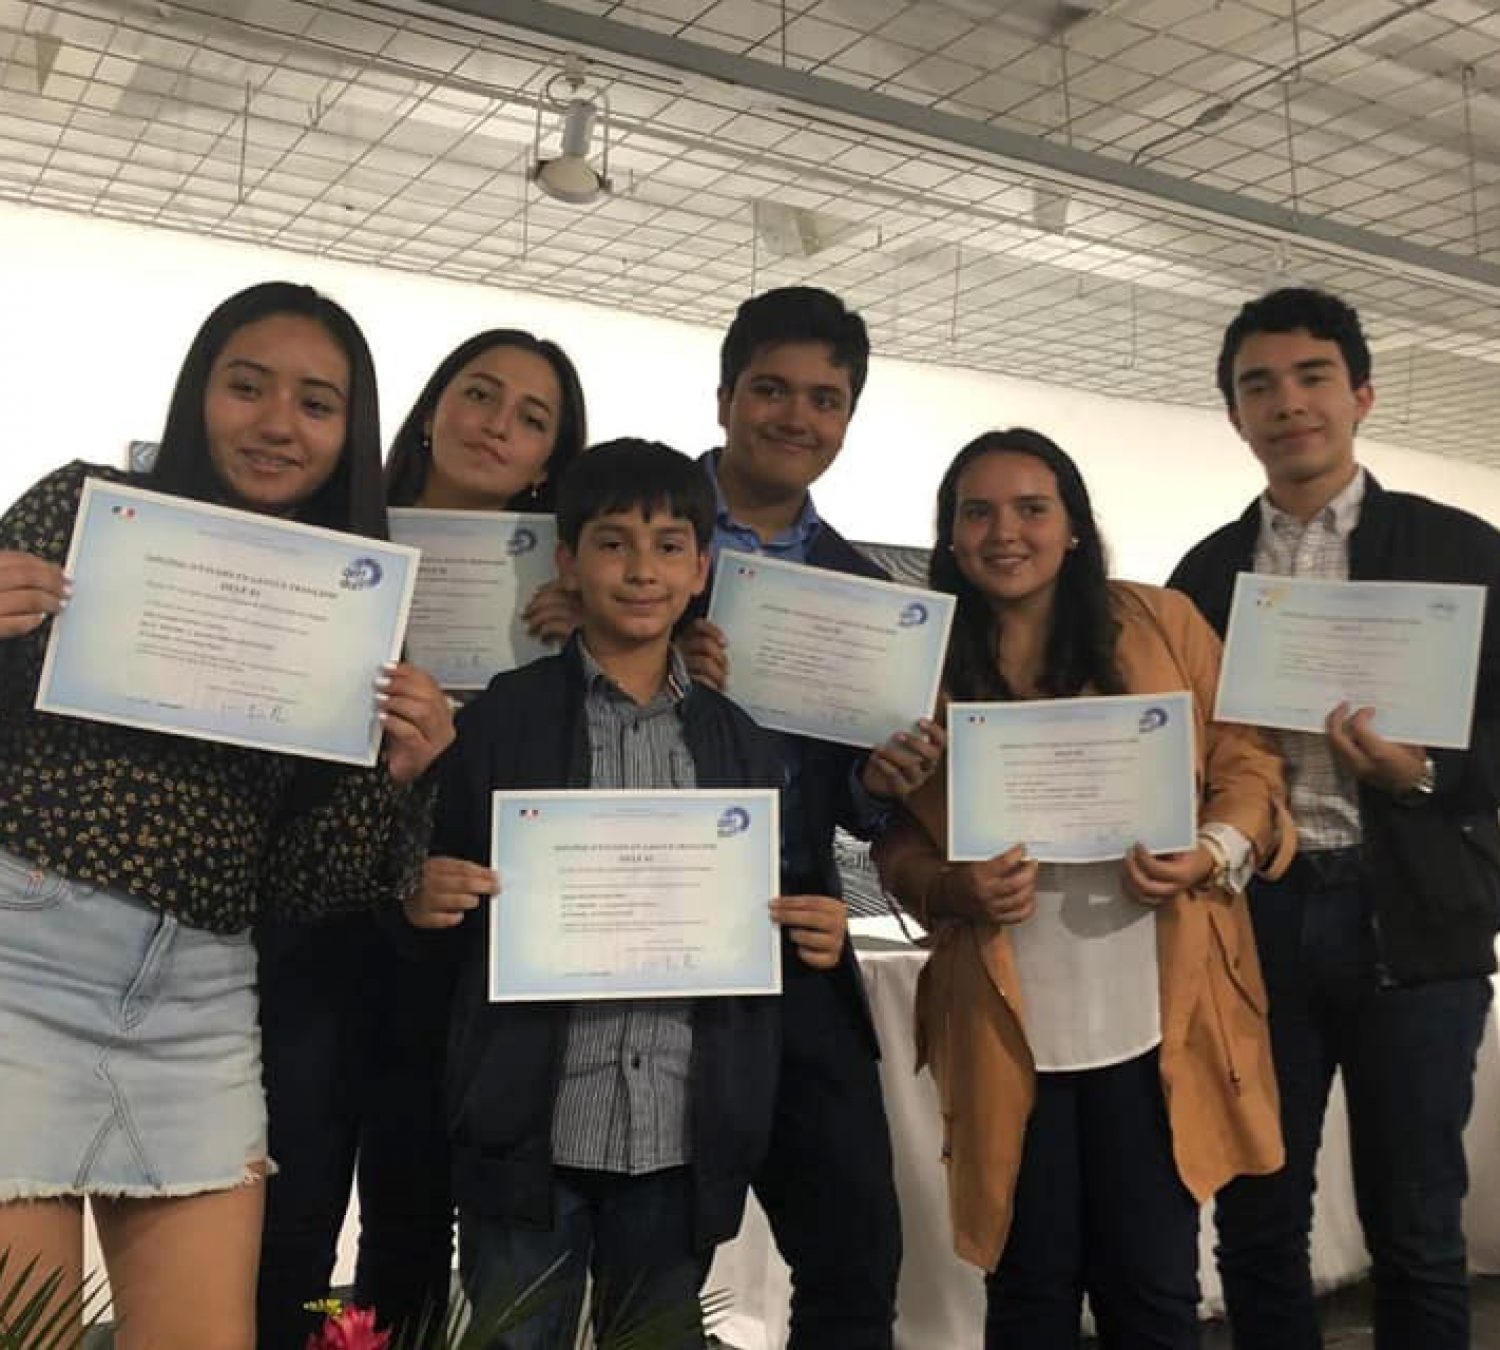 Village students received DELF diplomas levels A1, A2 and B1